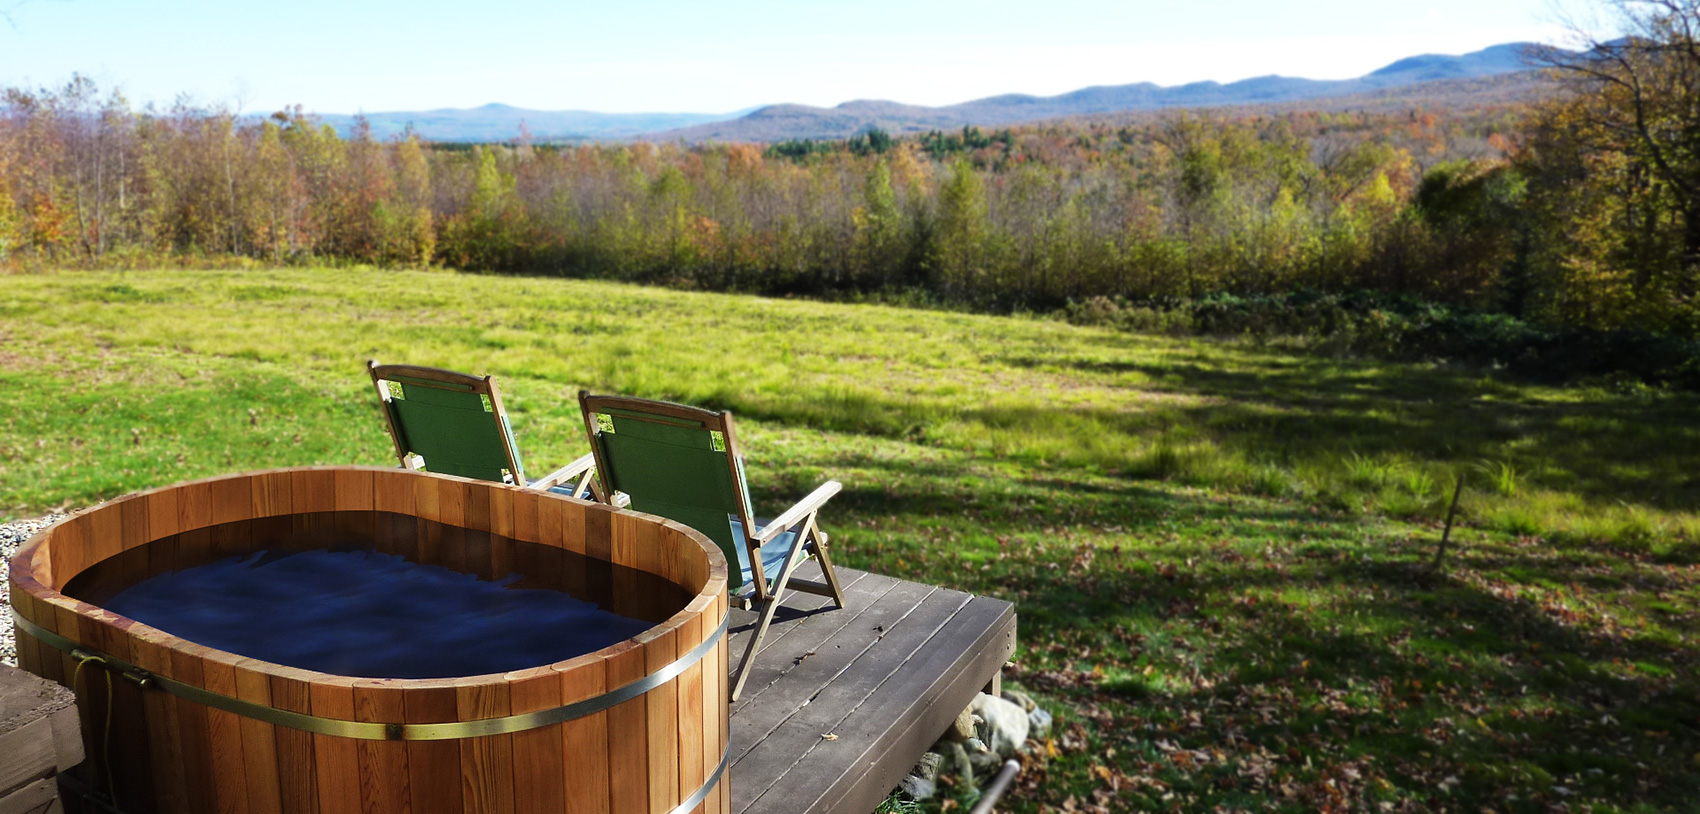 Home verdure outdoor living saunas and hot tubs for Home hot tubs